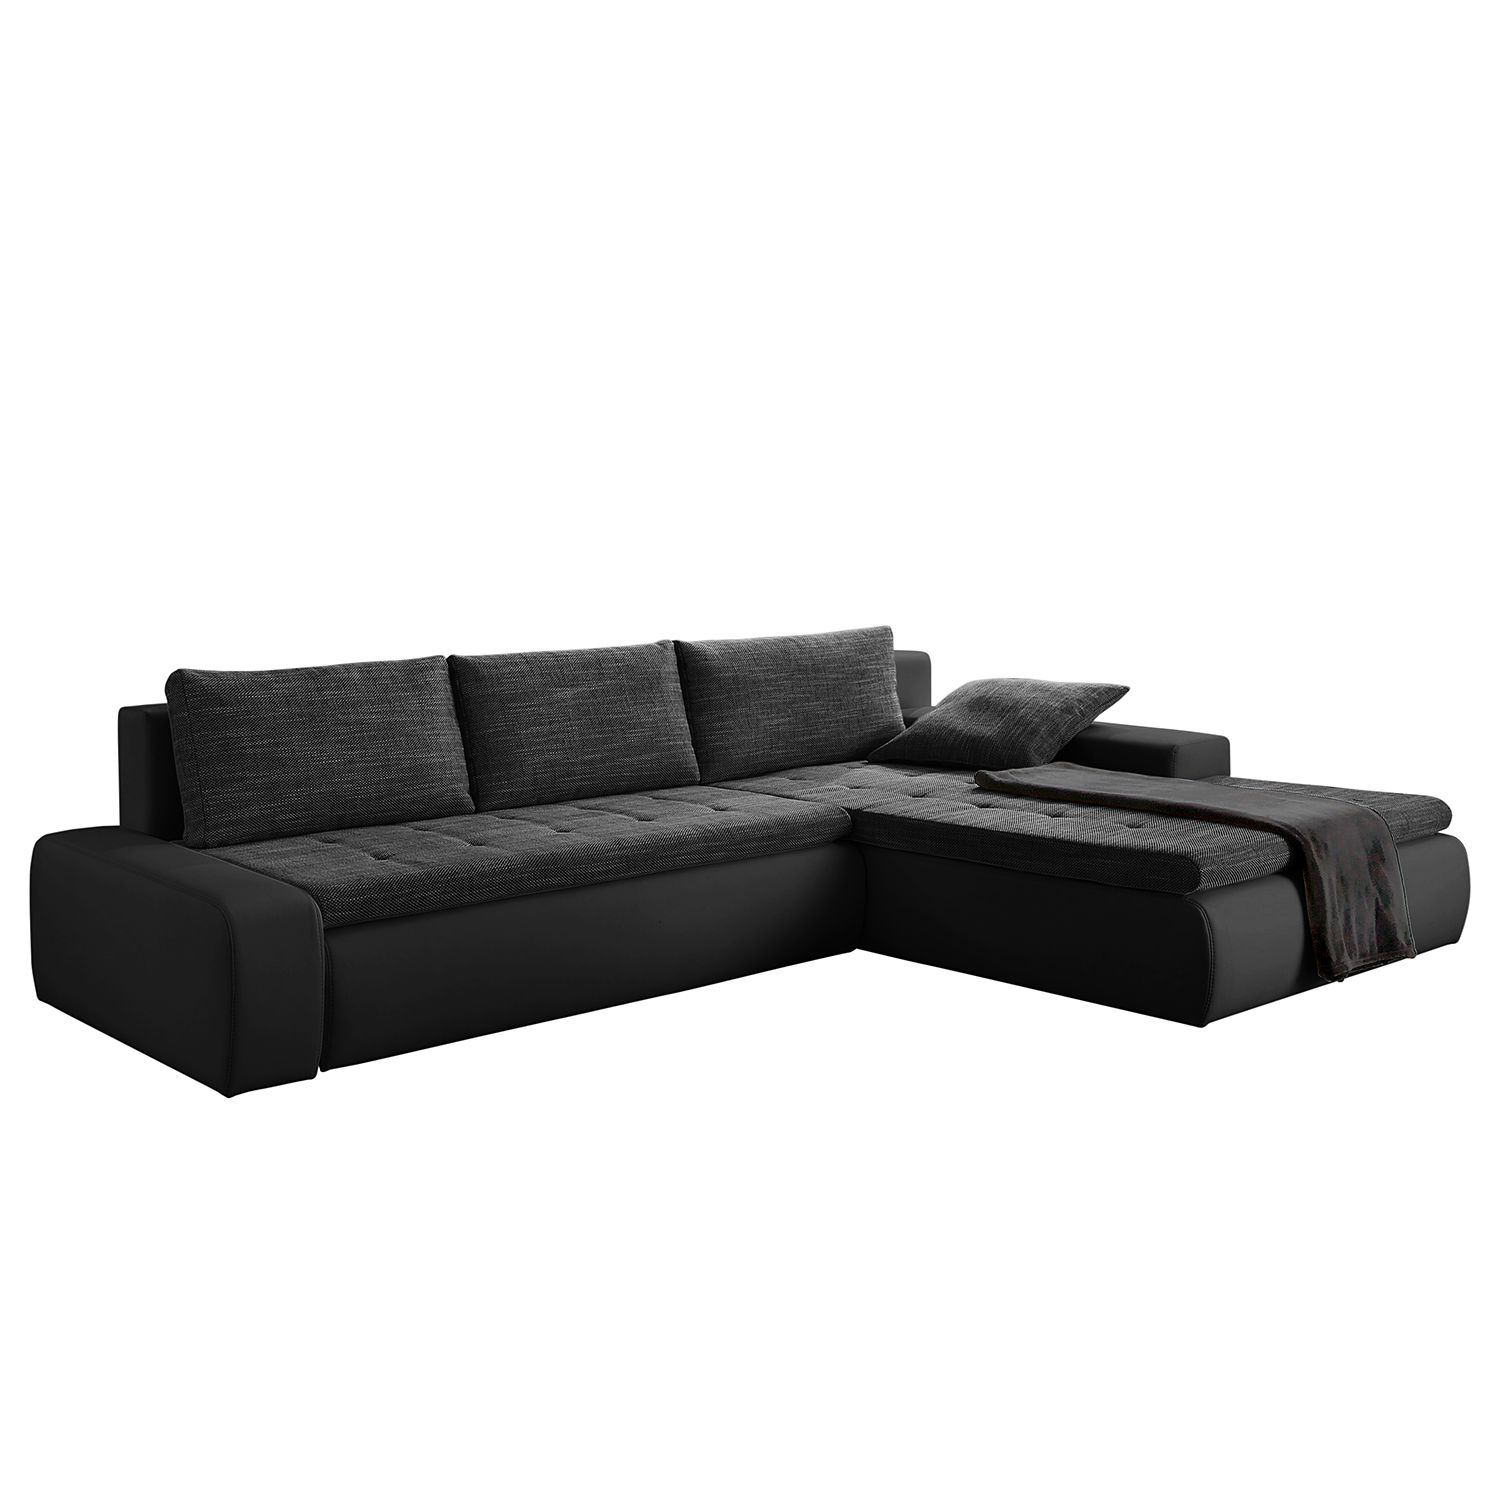 ledersofa mit schlaffunktion leder sofa mit. Black Bedroom Furniture Sets. Home Design Ideas